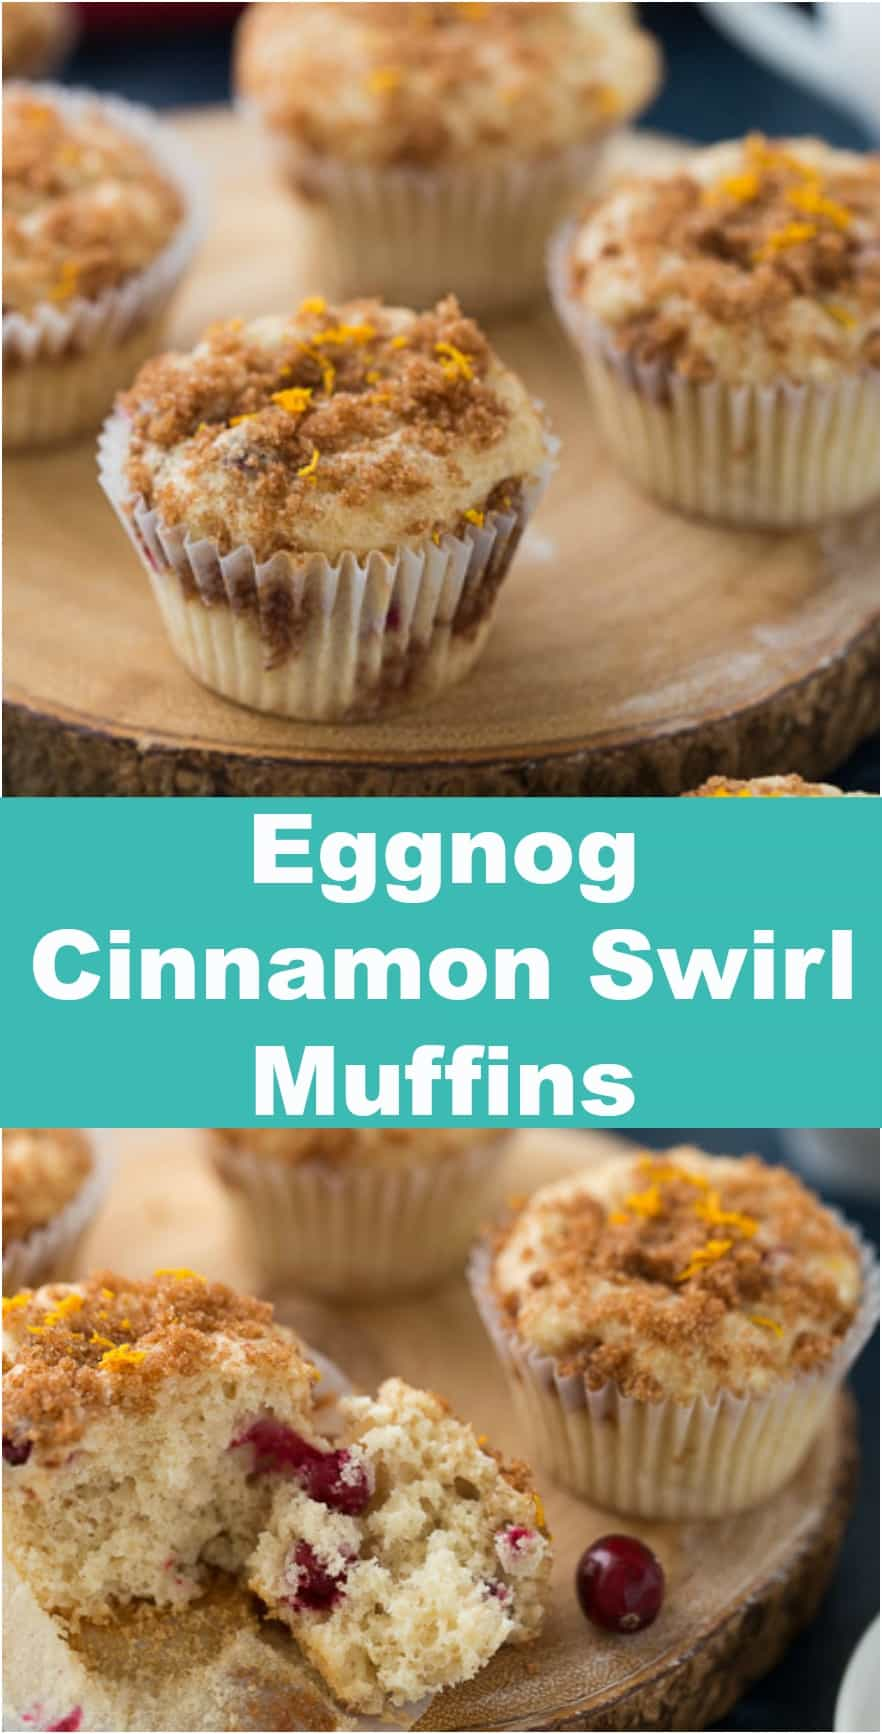 These eggnog cinnamon swirl muffins are baked with spiced eggnog, orange zest and cranberries. They are the perfect on-the-go breakfast for a busy season. #eggnog #muffins